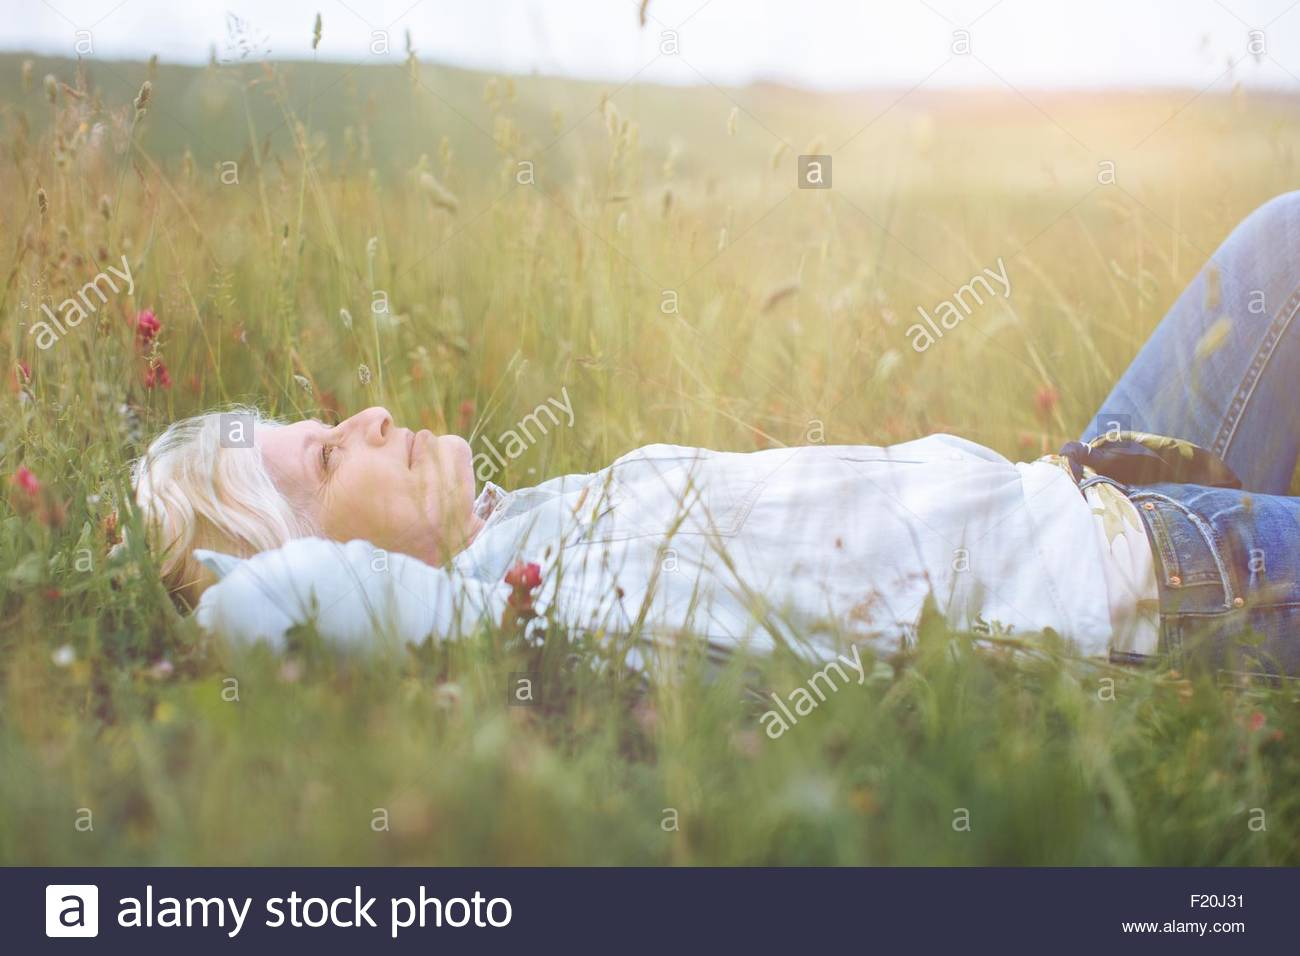 Mature woman reclining in long grass, Tuscany, Italy - Stock Image